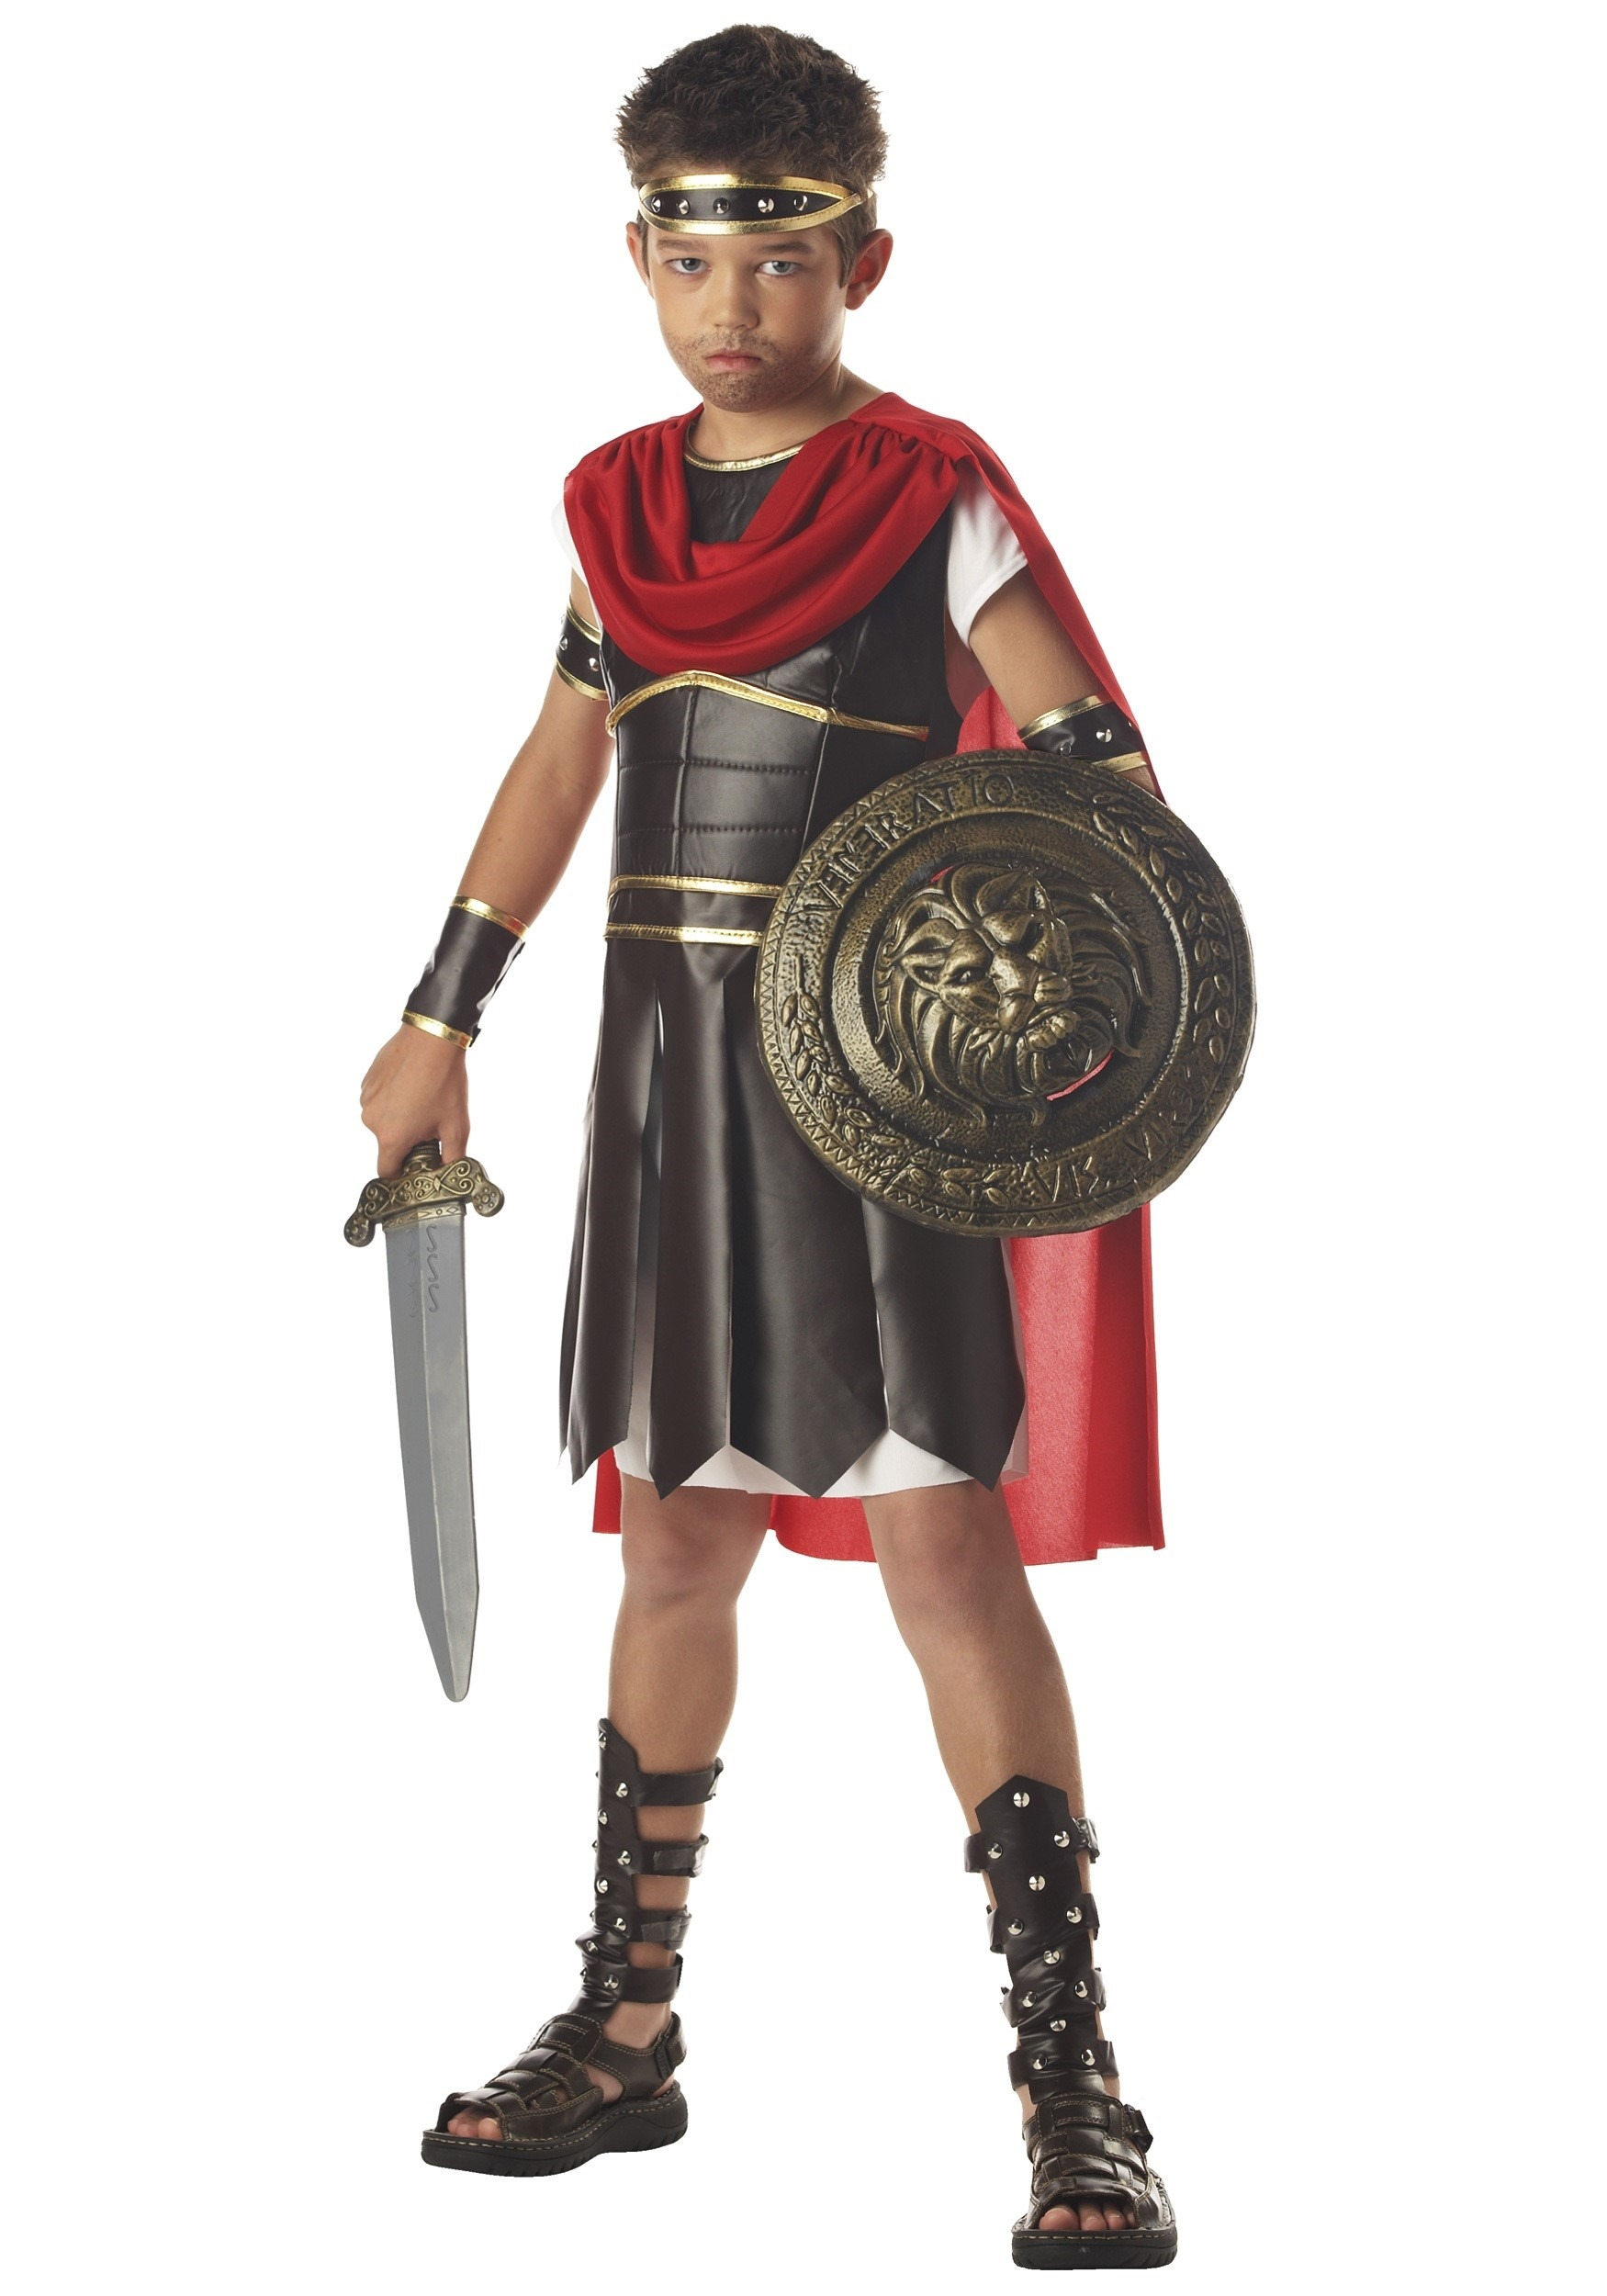 halloween costume idea on Home Halloween Costume Ideas Roman Costumes Kids Roman Soldier Costume